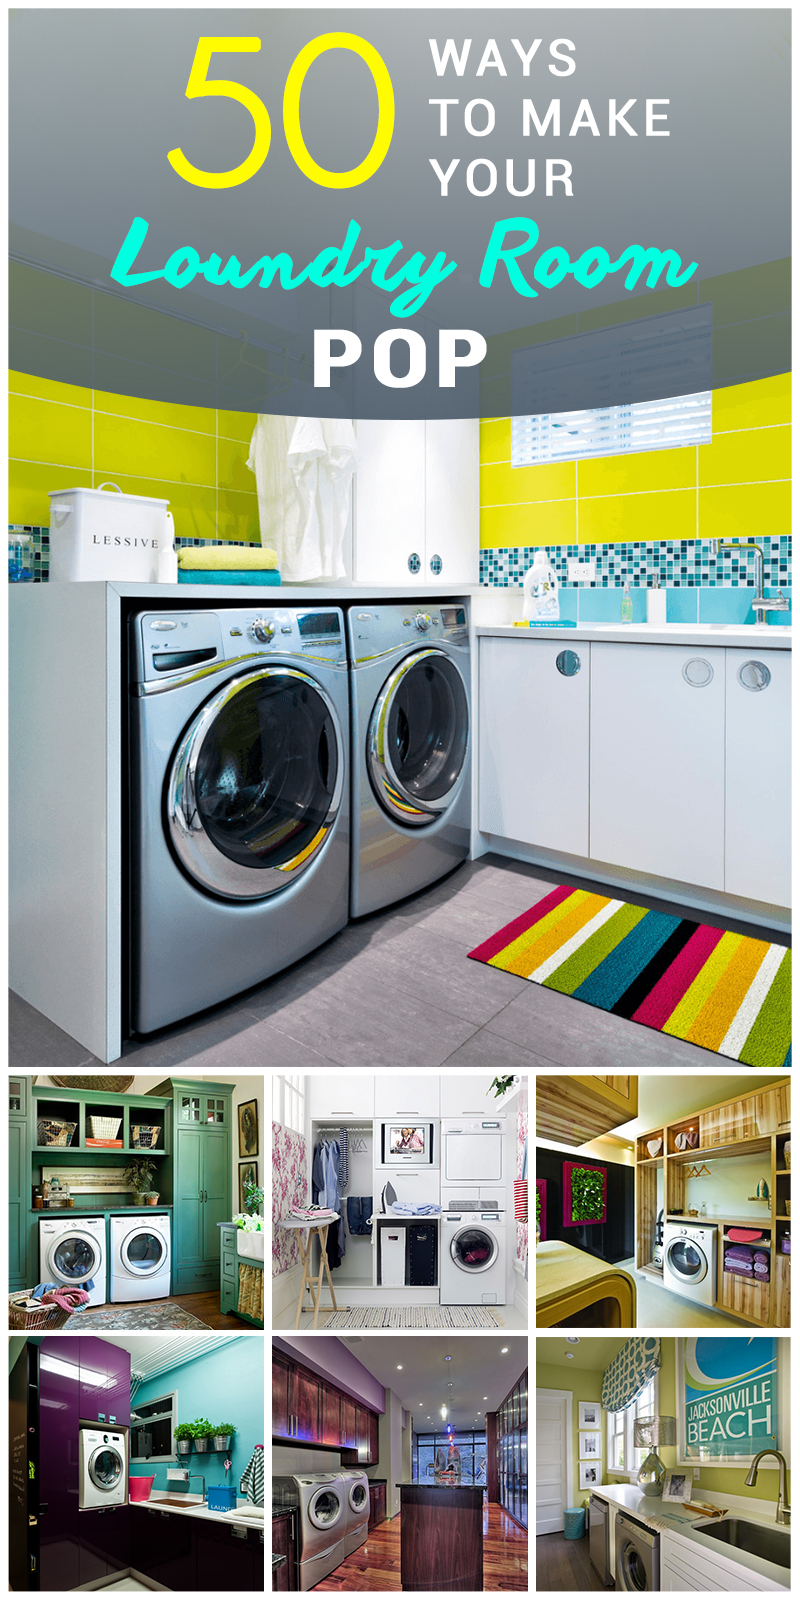 laundry room design ideas - Laundry Room Design Ideas